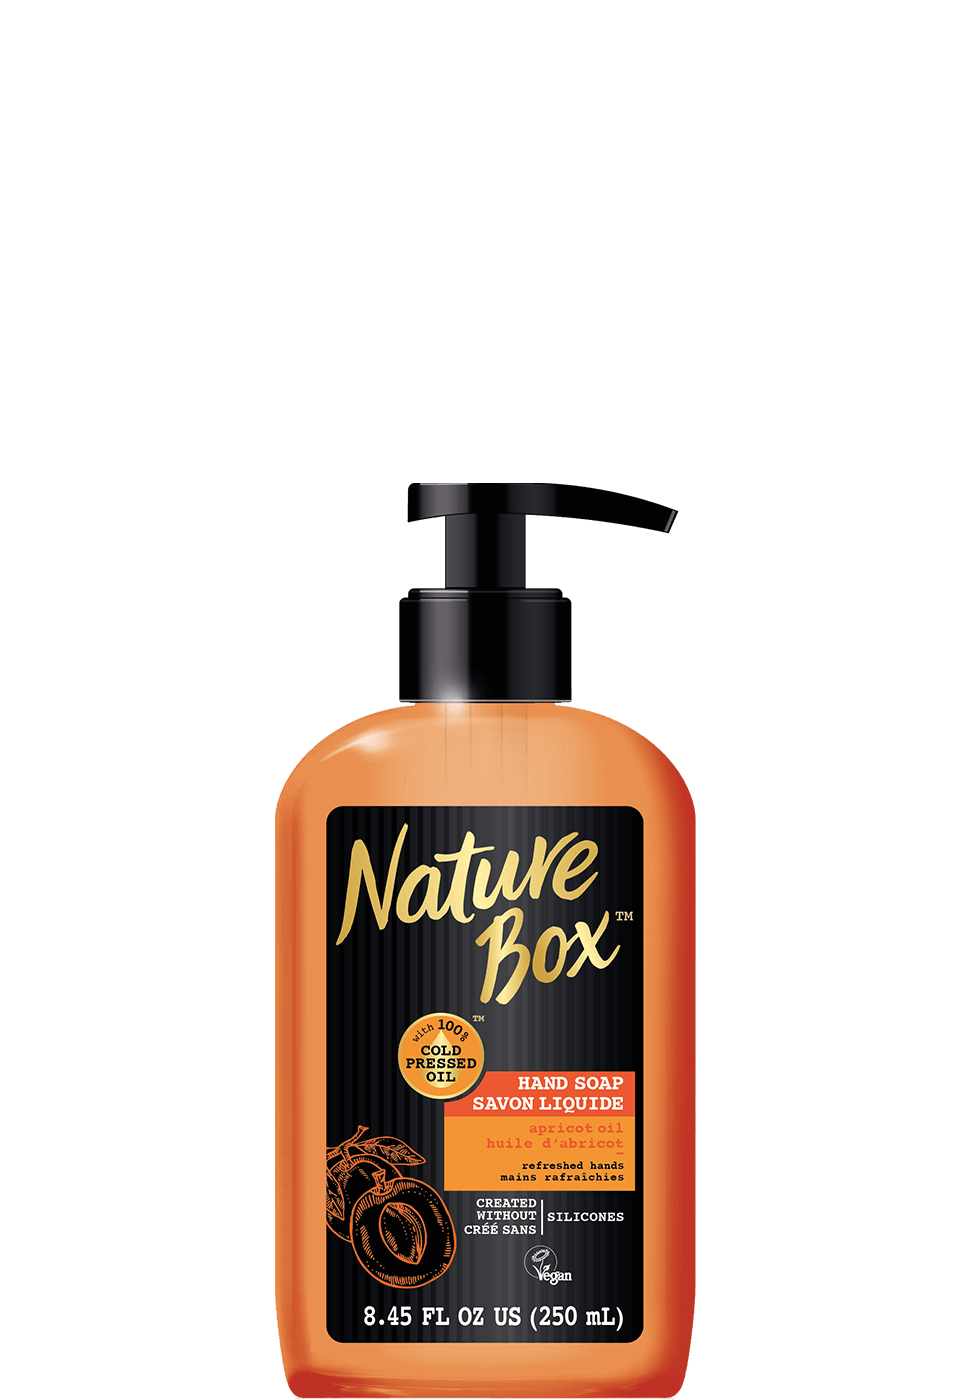 naturebox_us_apricot_hand_soap_970x1400